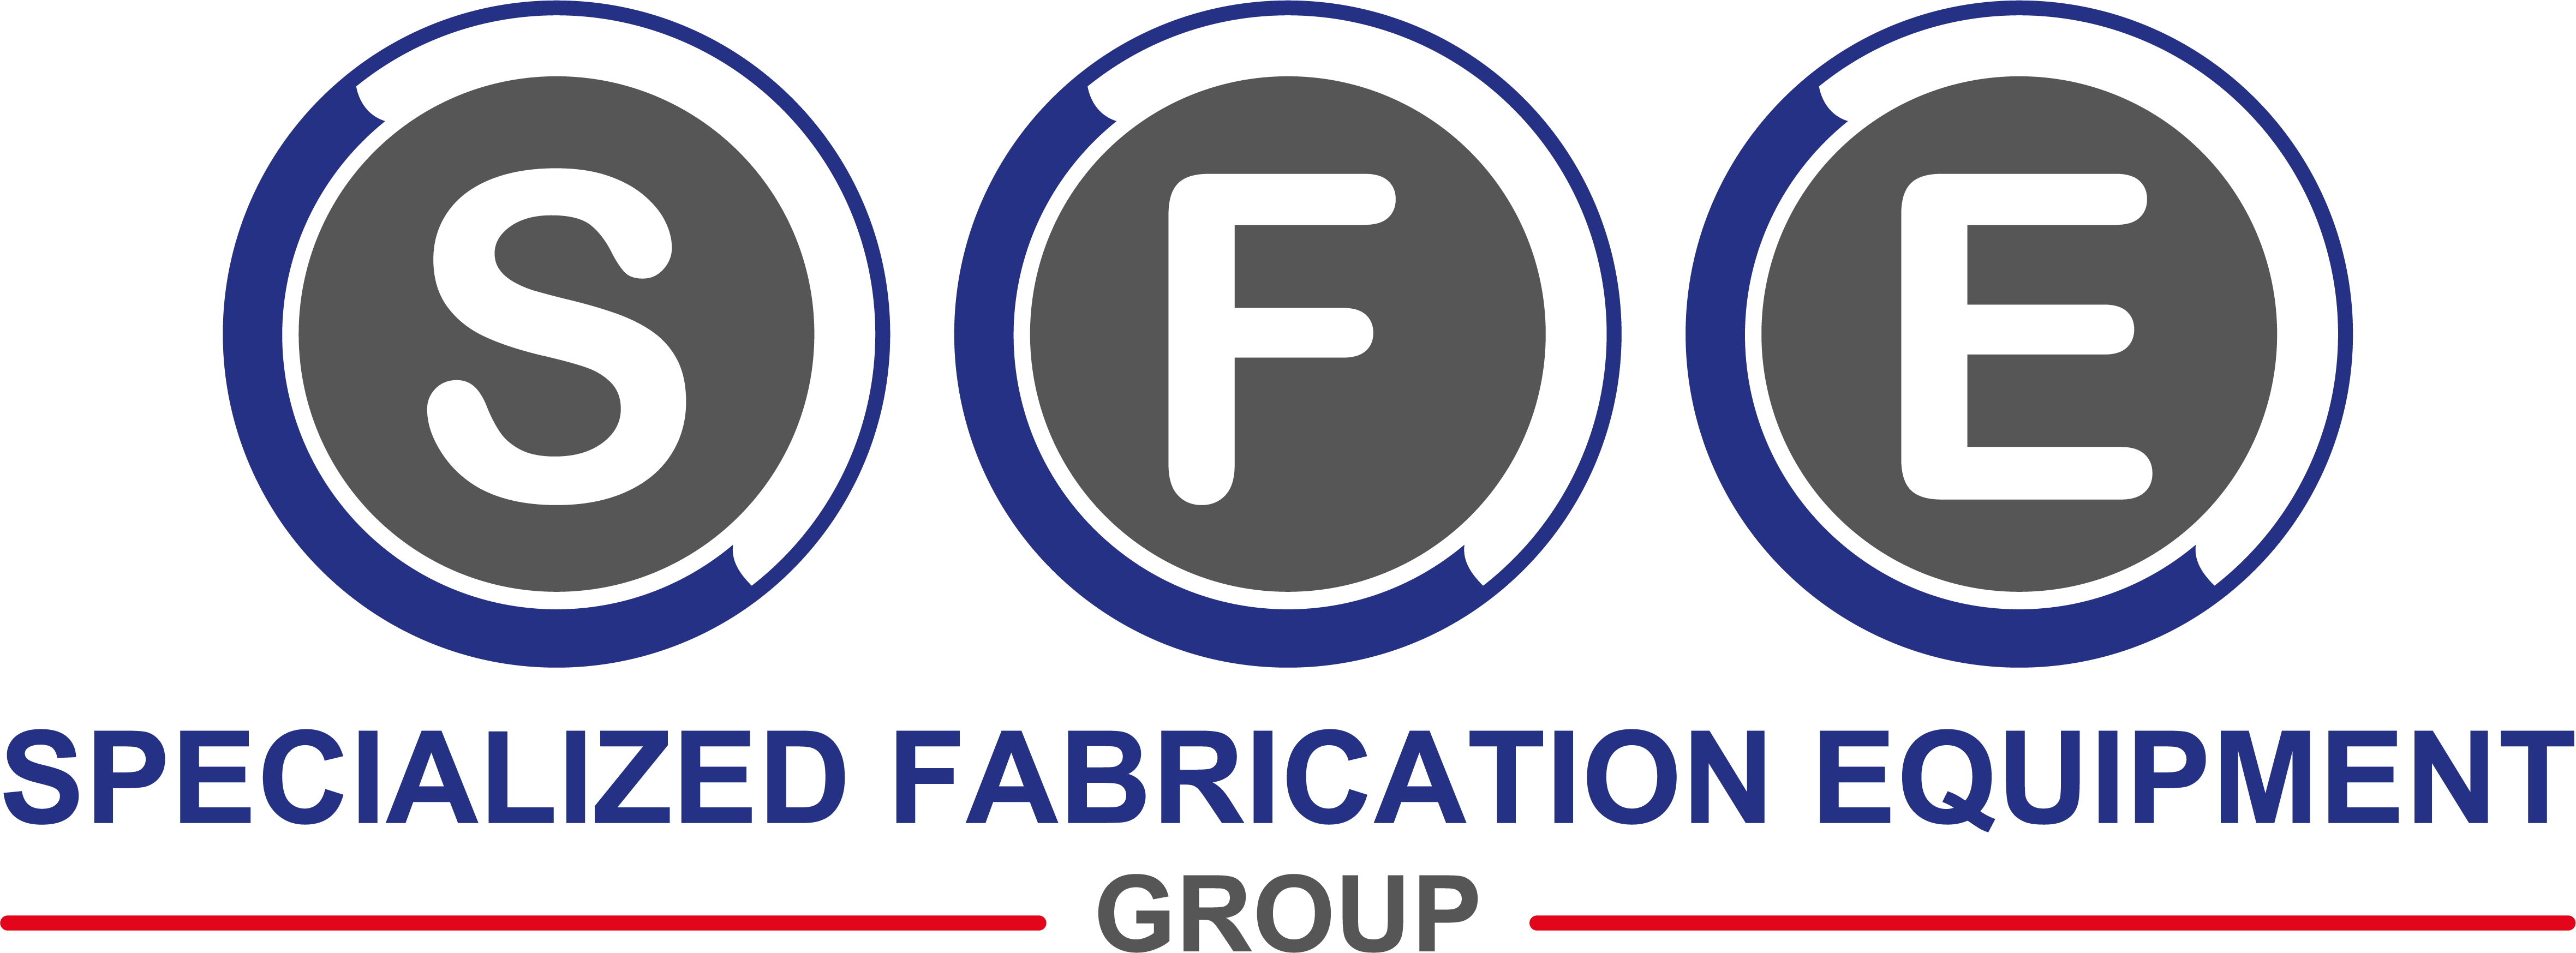 Specialized Fabrication Equipment Group, LLC